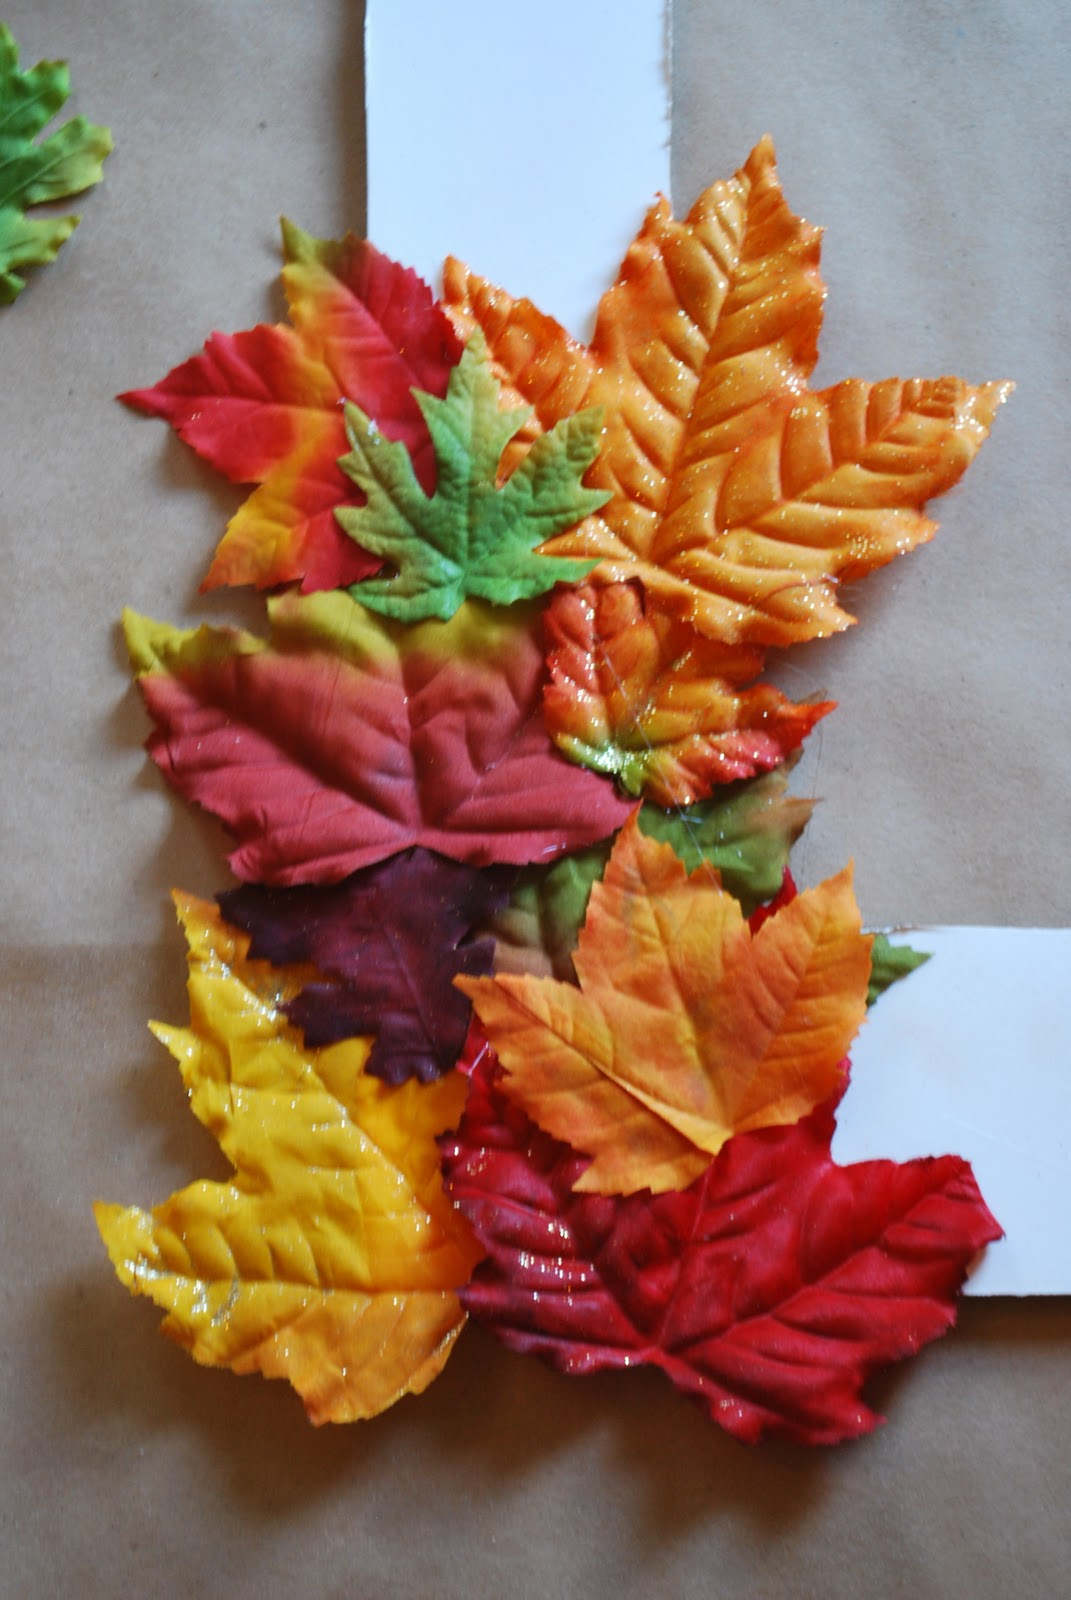 the leaves, being sure to keep a balance of color on all sides